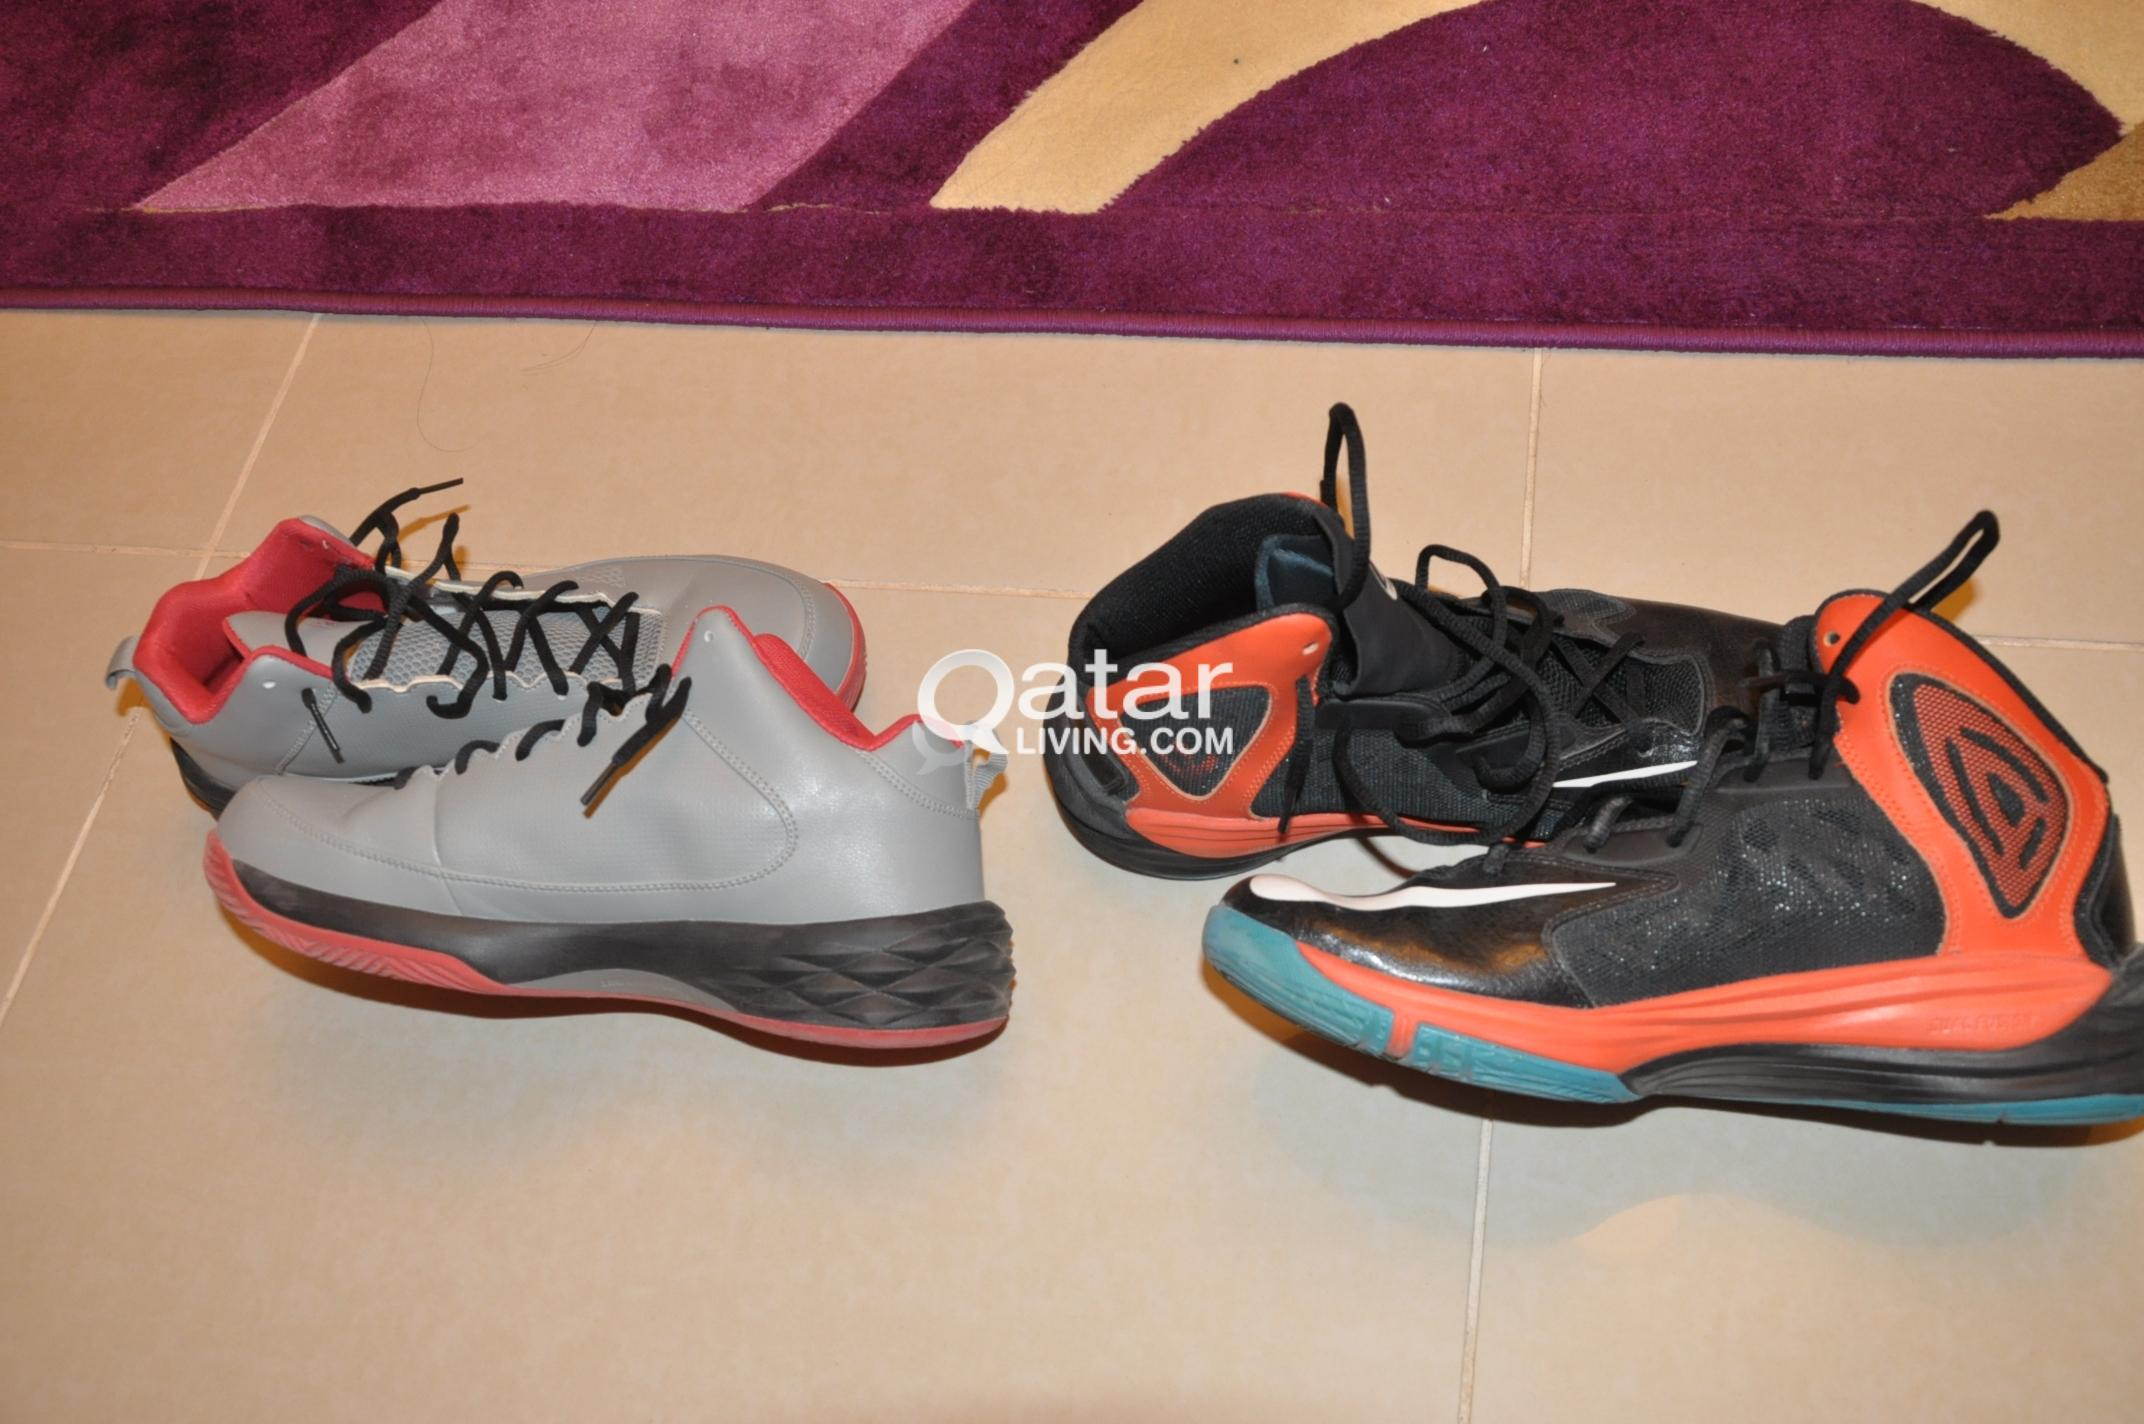 For Sale Peak And Nike Basketball Shoes Qatar Living